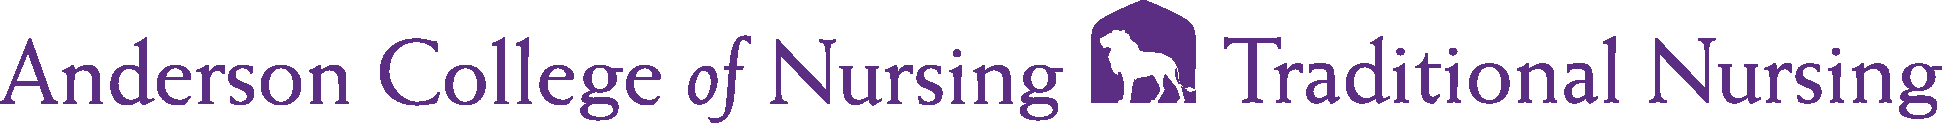 Anderson College of Nursing Traditional Logo - Purple - Version 2